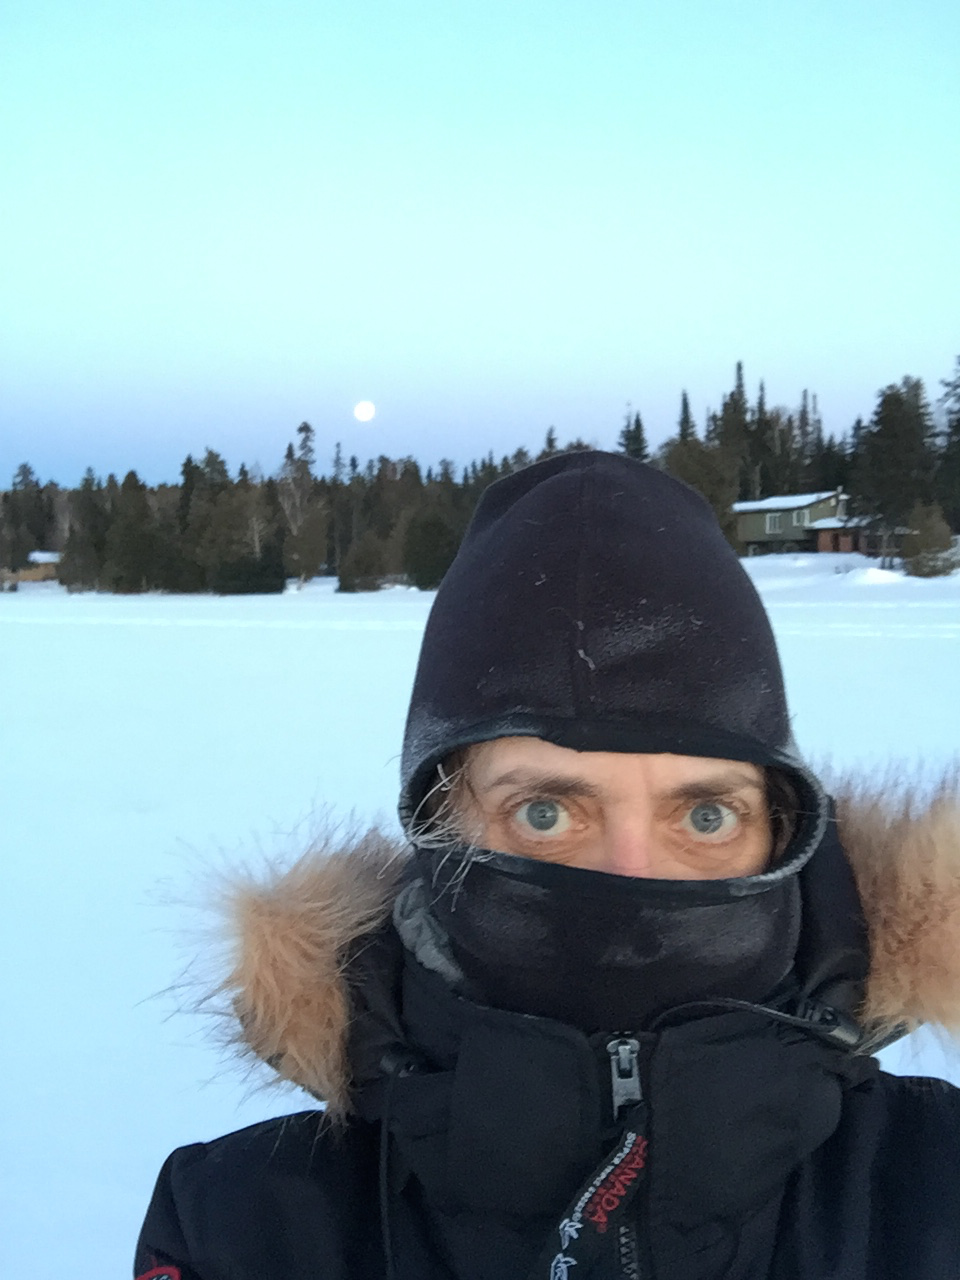 full moon rising over frozen lake — with Amanta Scott